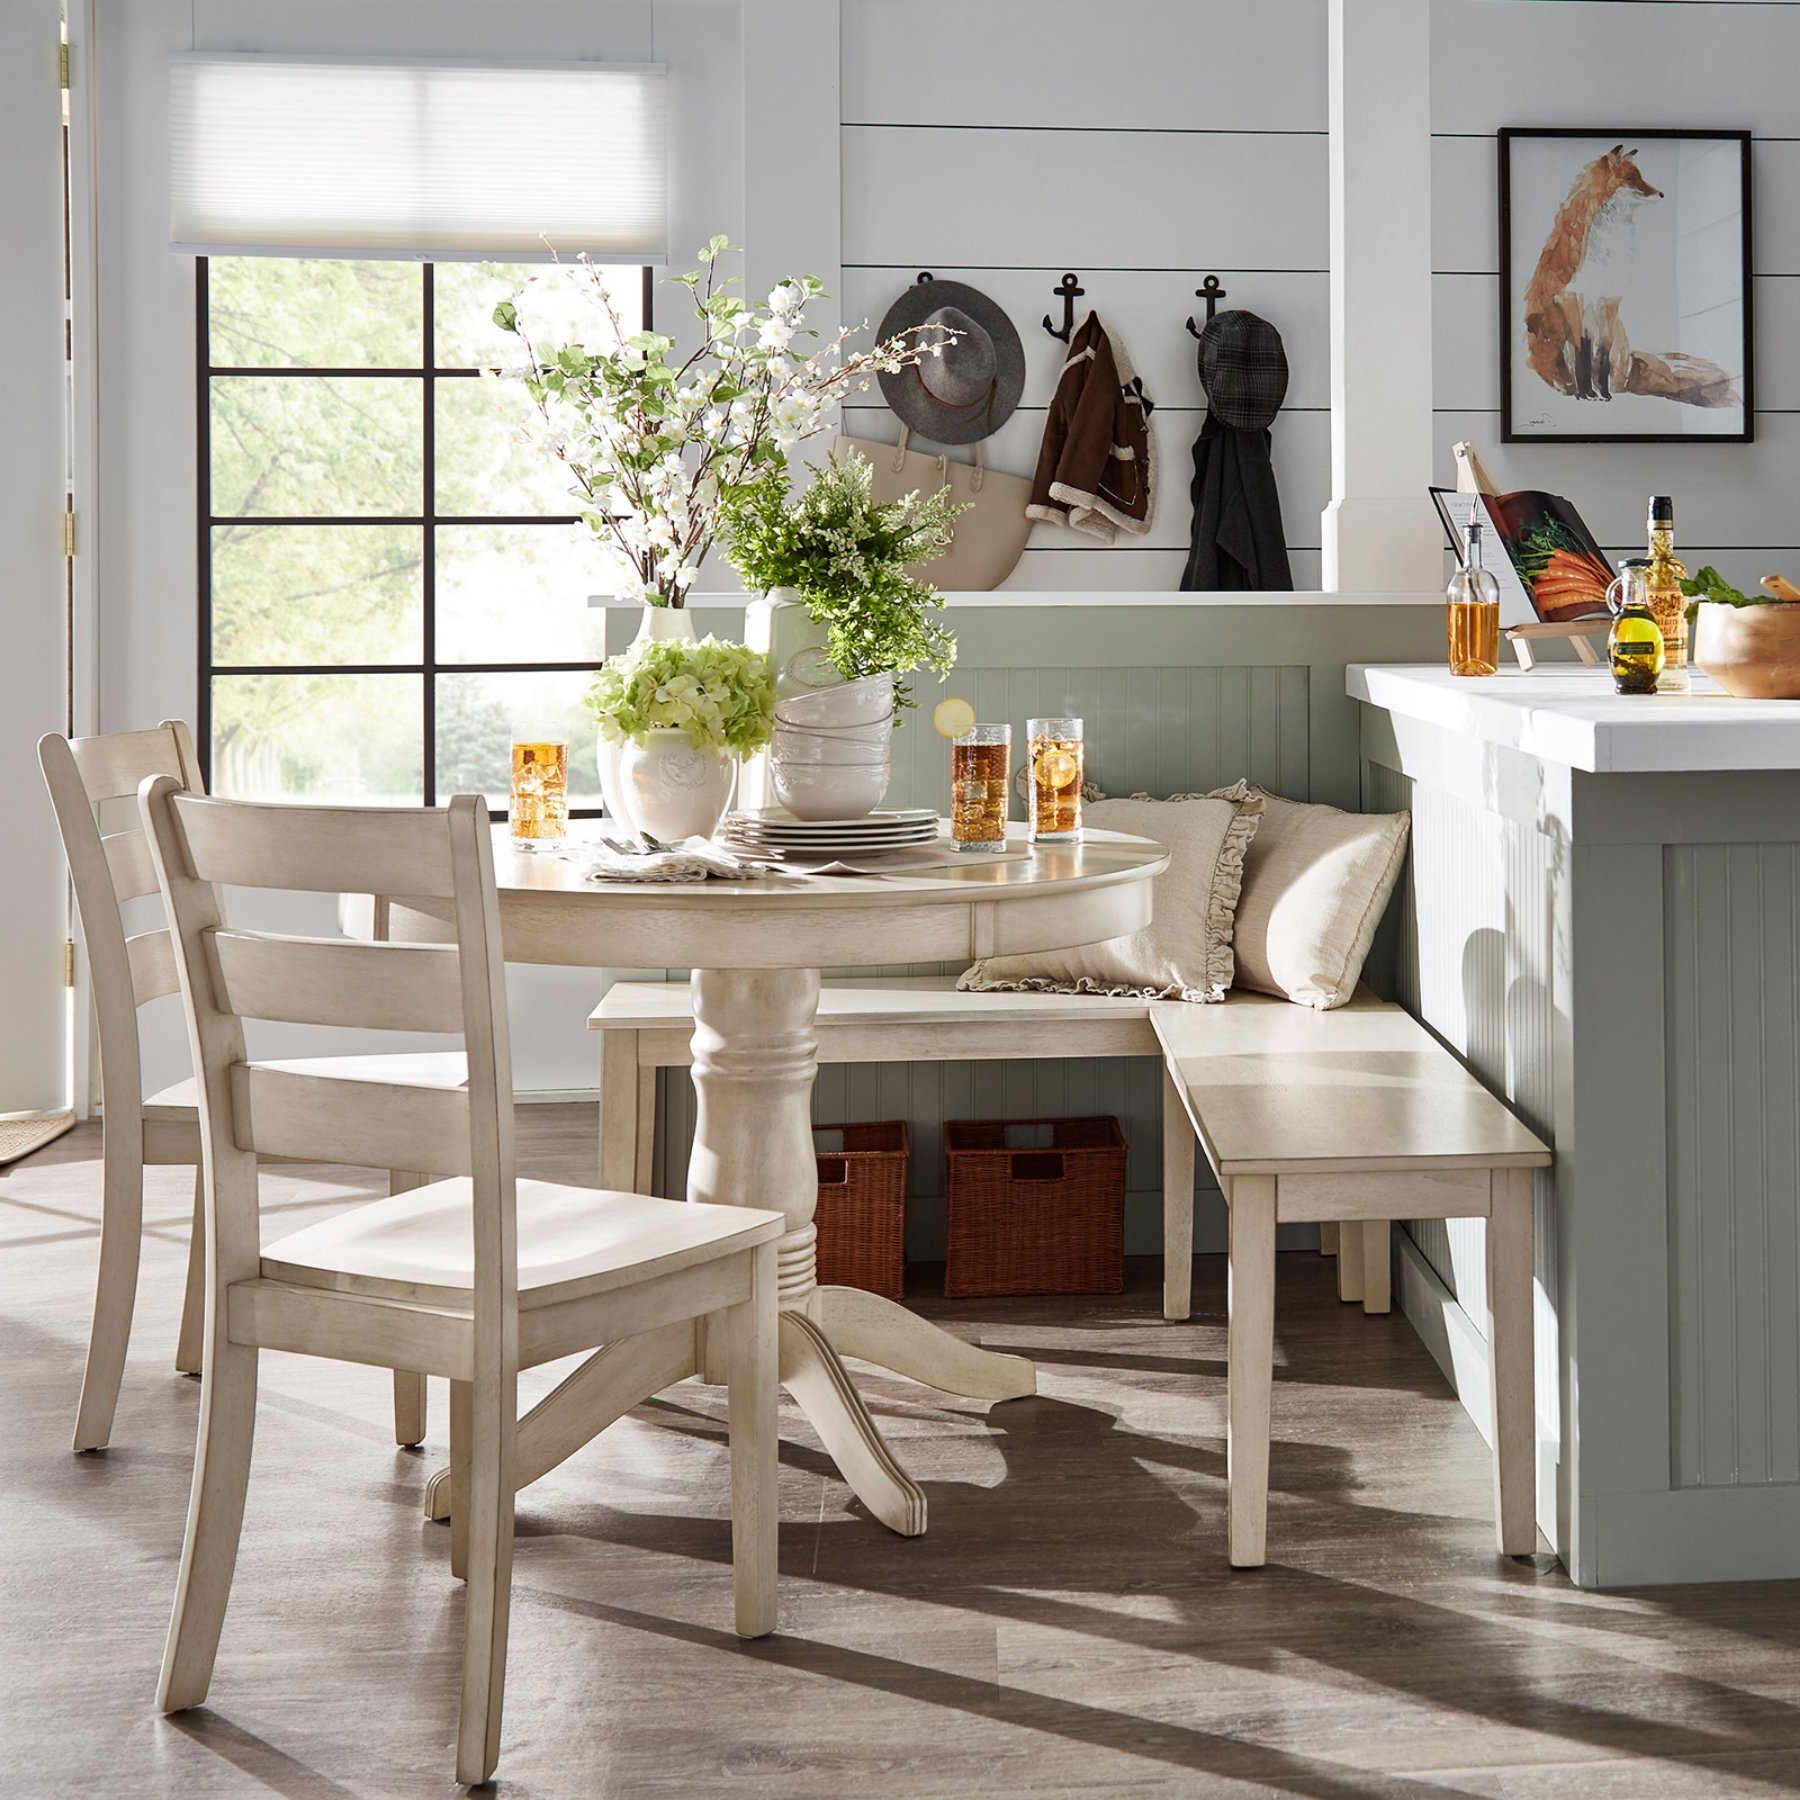 Weston Home Lexington 5 Piece Breakfast Nook Round Dining Set With Regard To Widely Used 5 Piece Breakfast Nook Dining Sets (View 12 of 20)